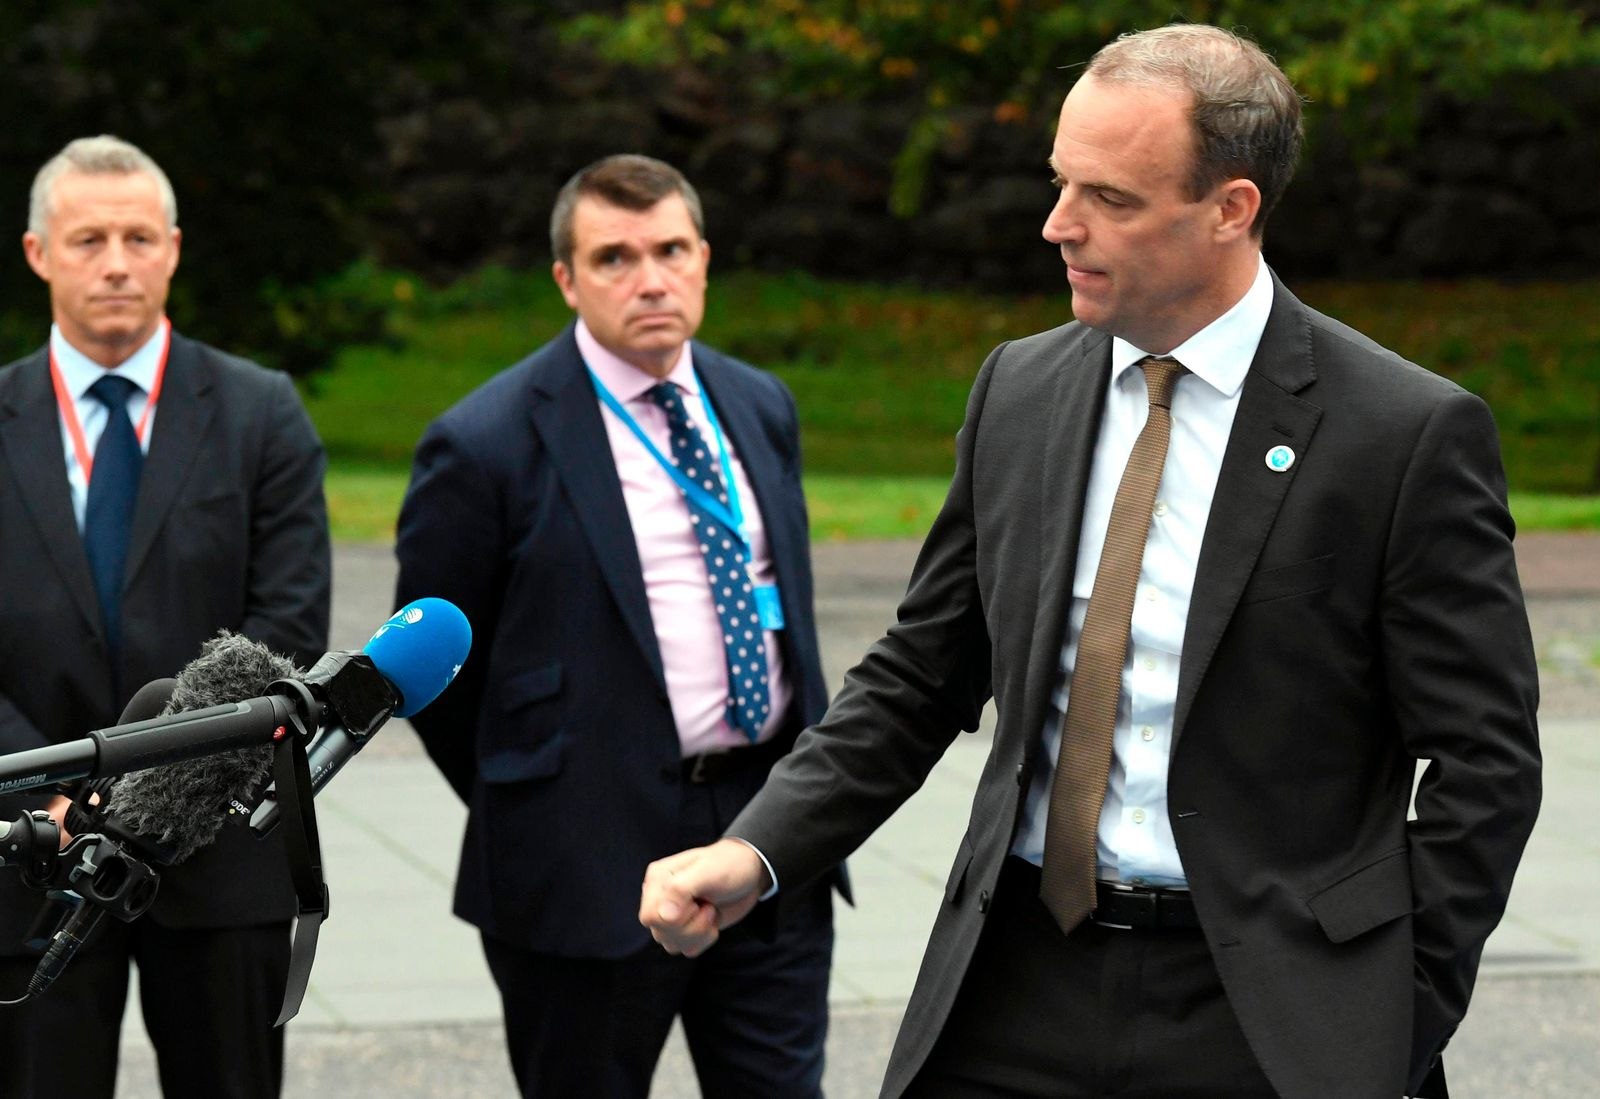 British Secretary of State for Foreign and Commonwealth Affairs and First Secretary of State Dominic Raab speaks to the media as he arrives to the Informal Meeting of EU Foreign Ministers in Helsinki, Finland, on Friday, Aug. 30, 2019. (Jussi Nukari/Lehtikuva via AP)